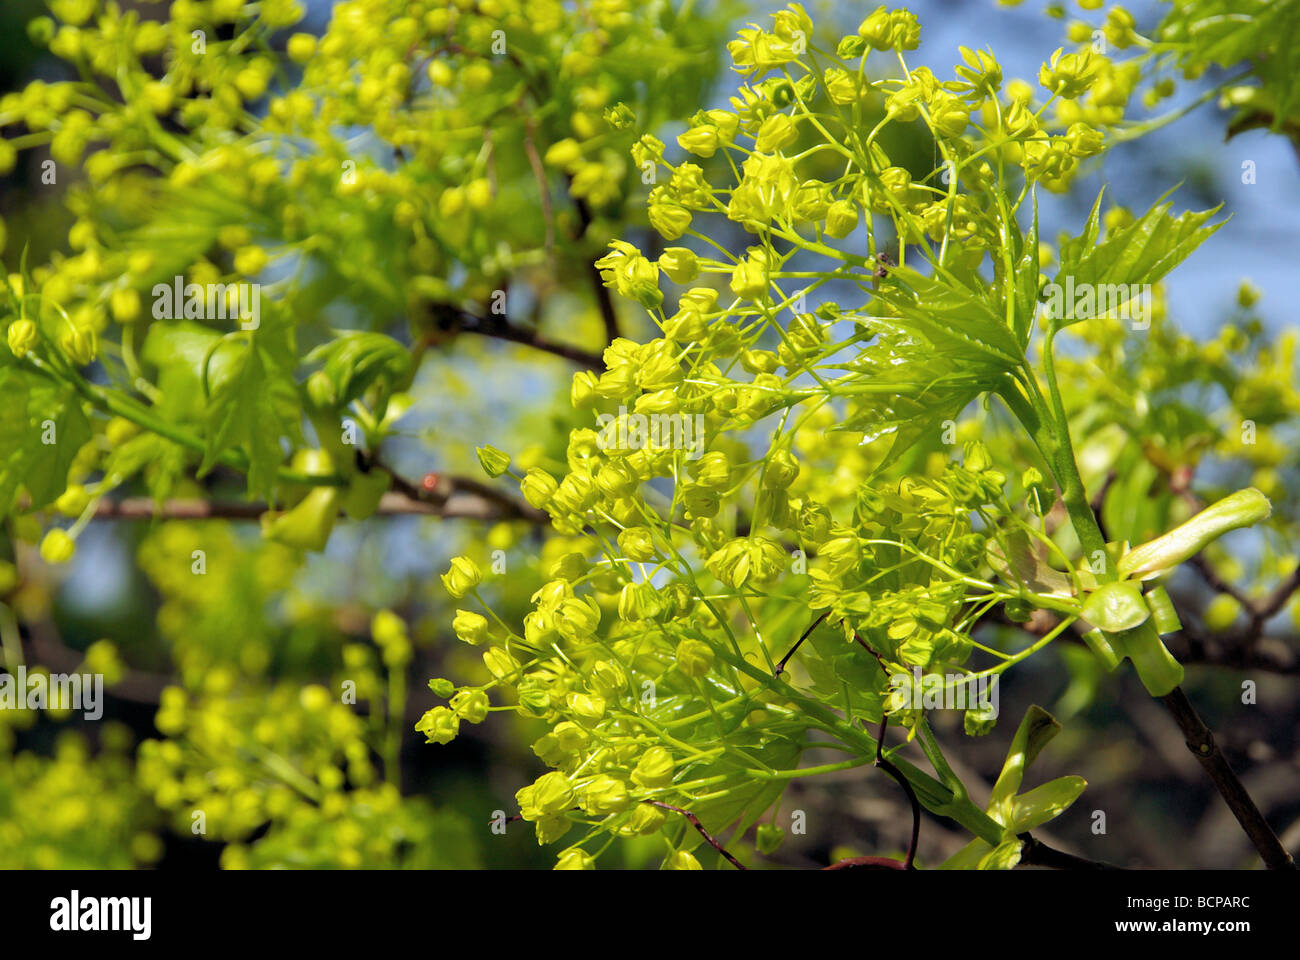 Ahornblüte flowering of maple tree 03 Stock Photo